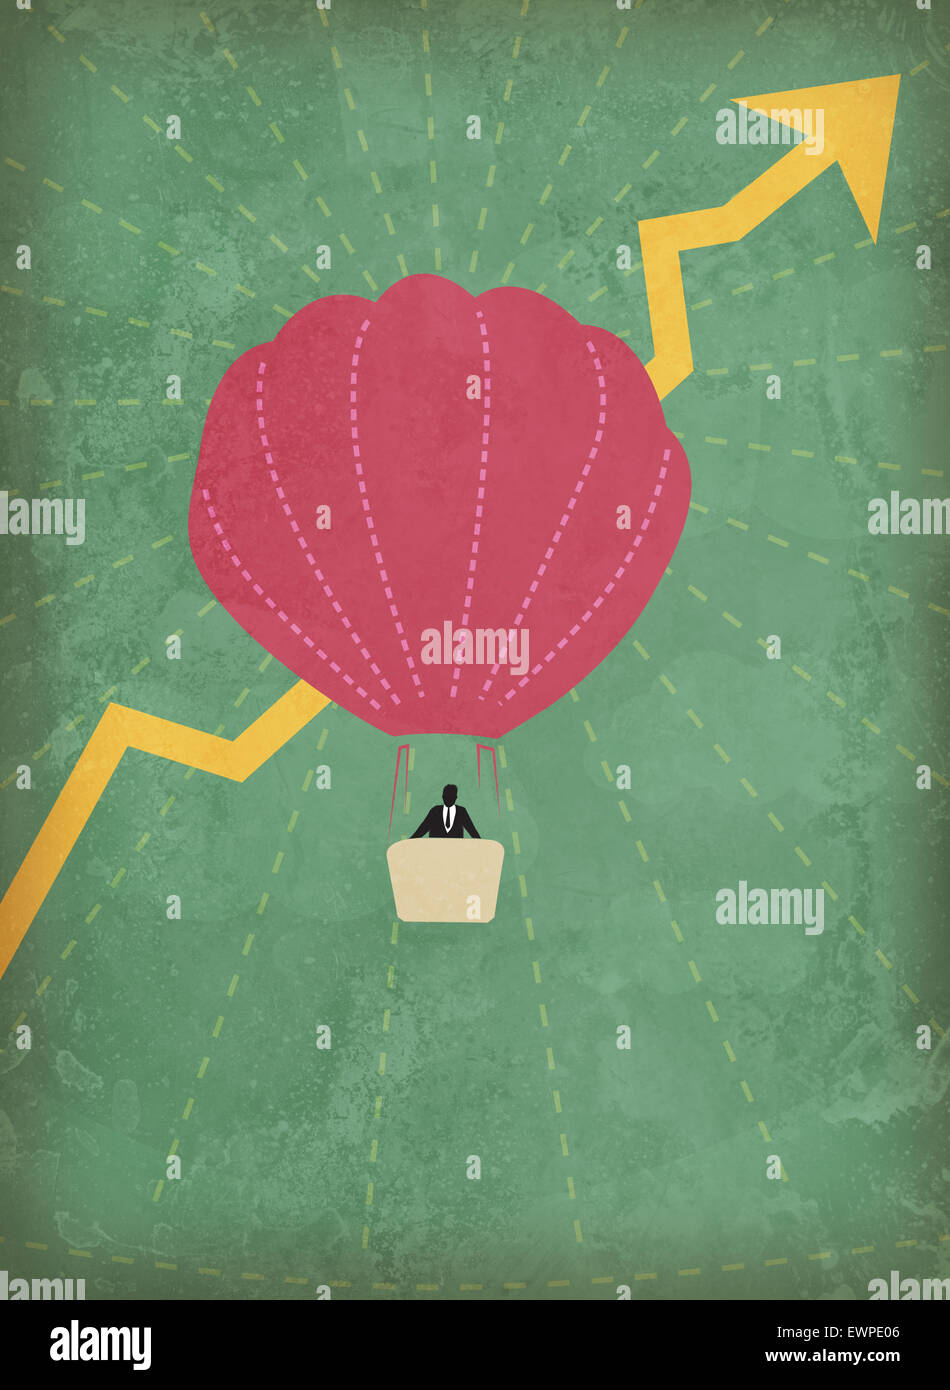 Businessman flying in hot air balloon with rise in profit - Stock Image